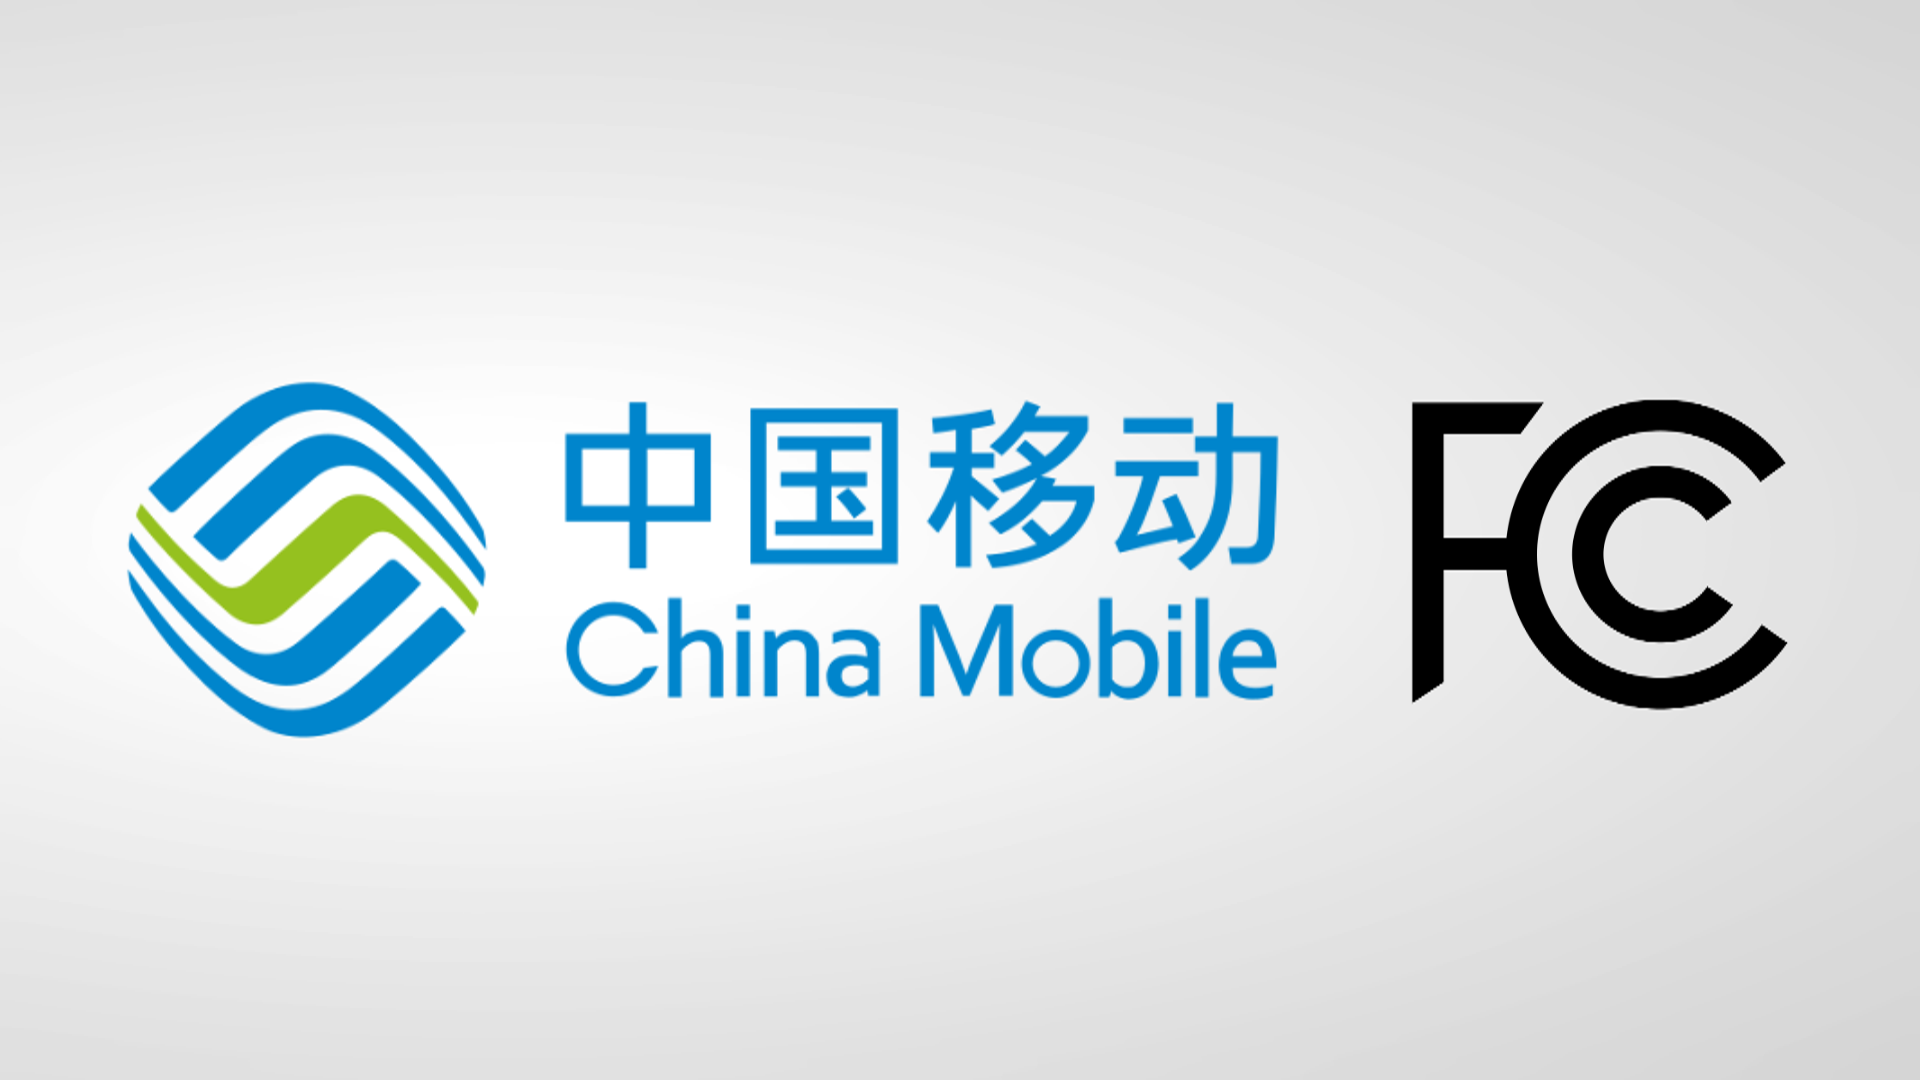 FCC blocks China Mobile's application to provide telecom services in US